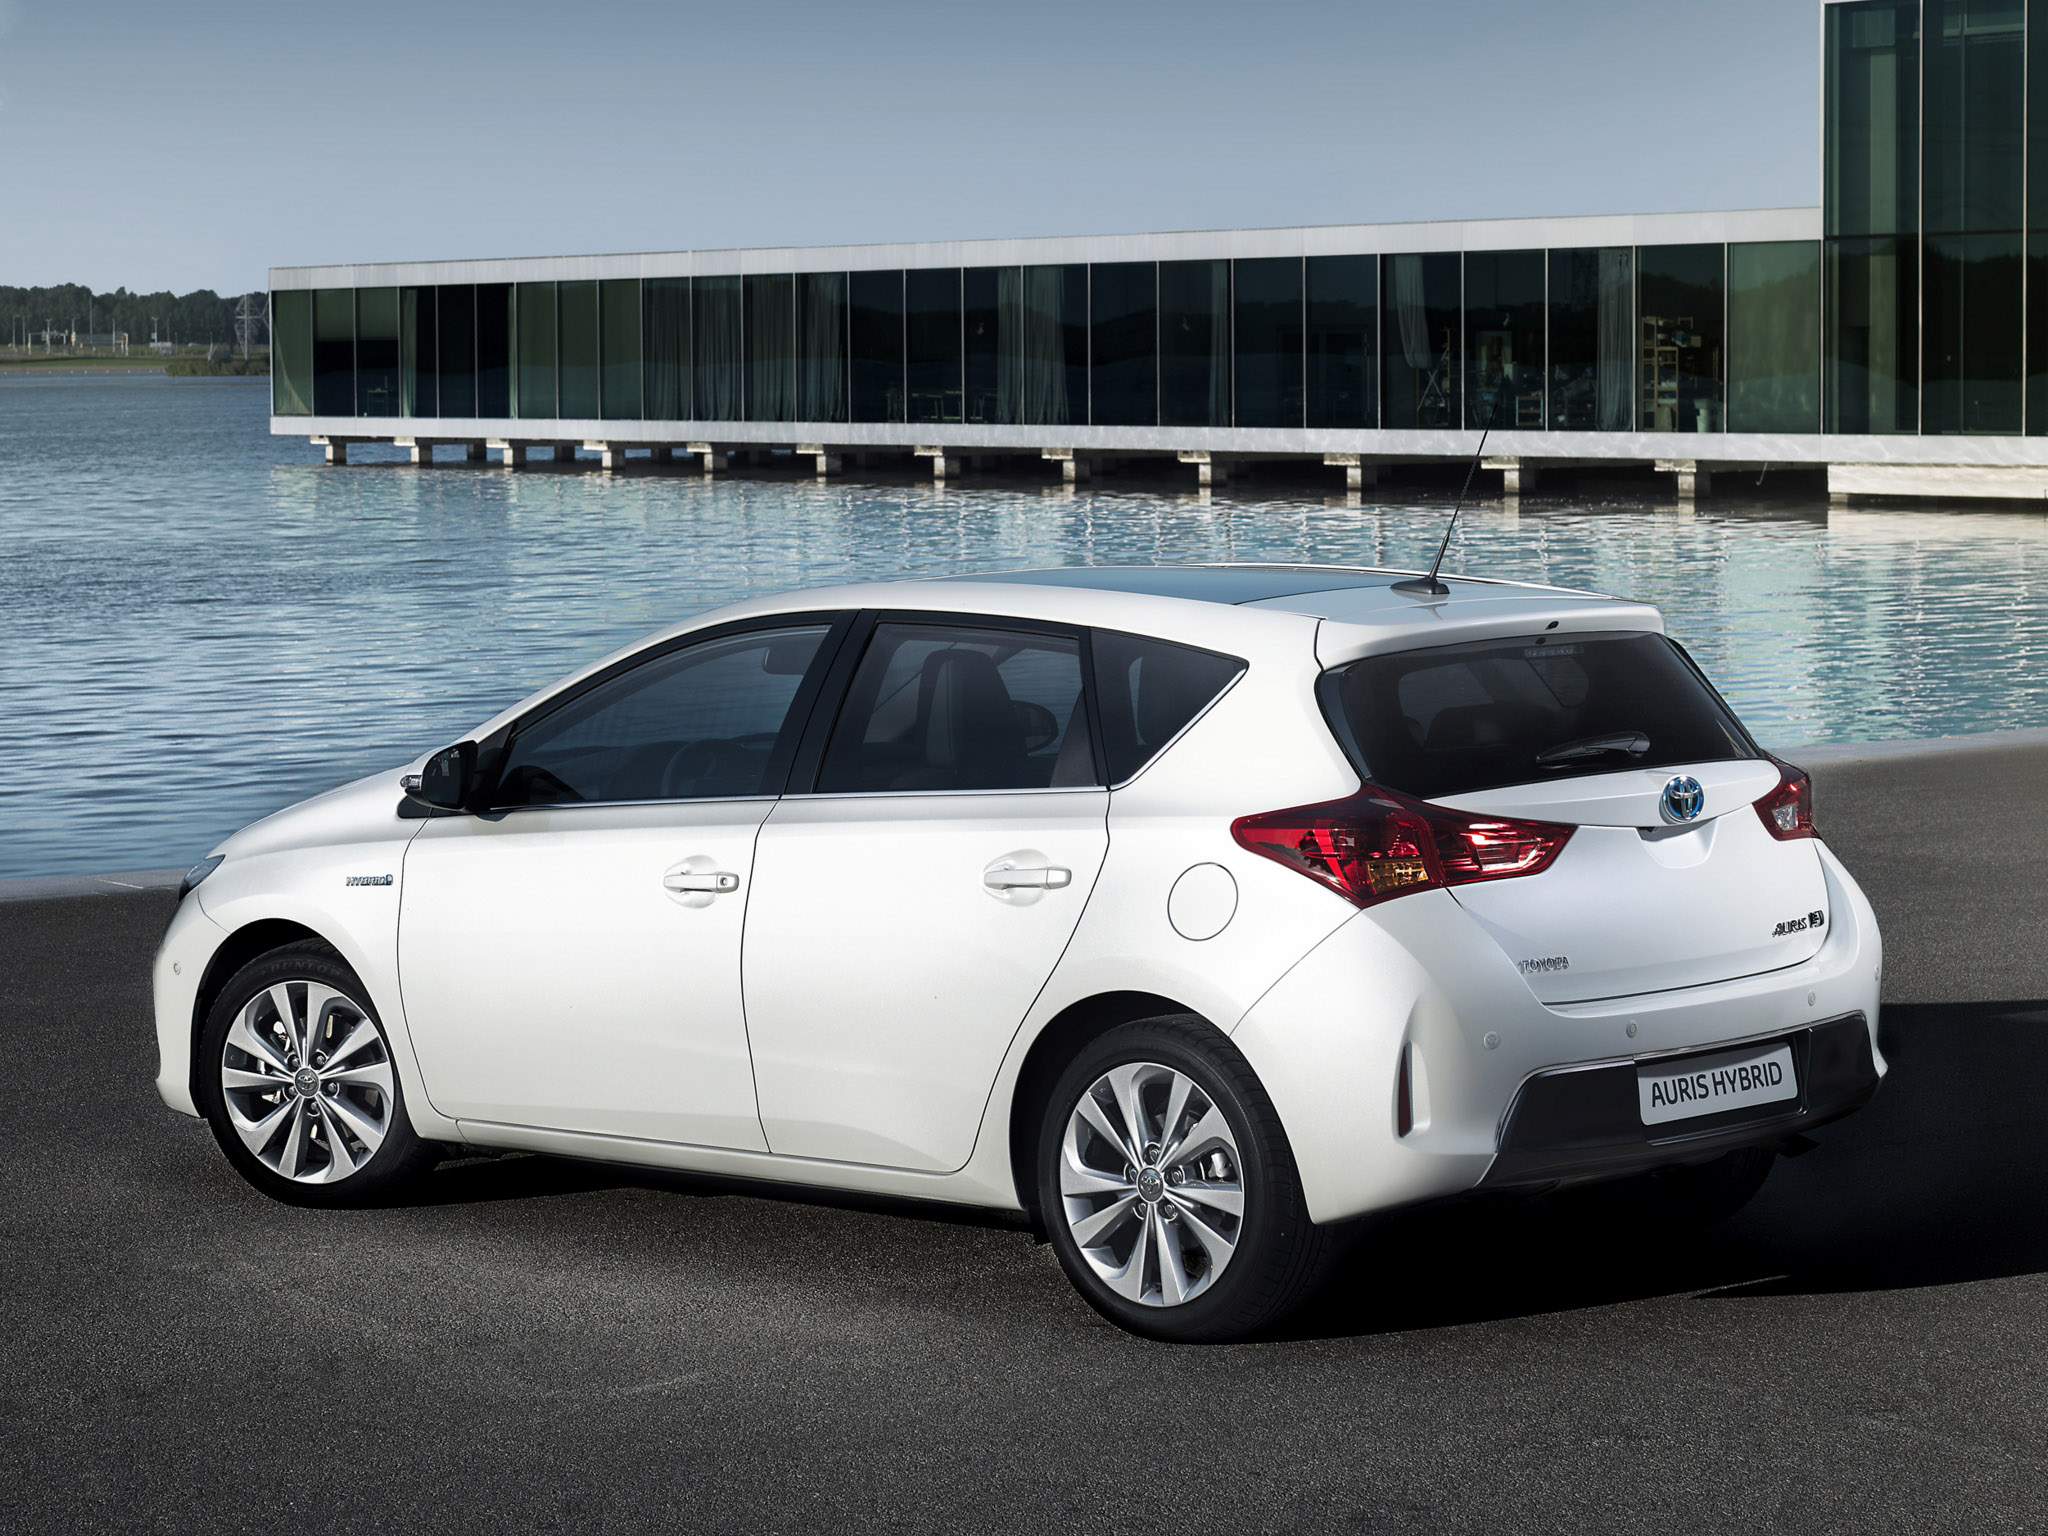 toyota auris hybrid 2013 toyota auris hybrid 2013 photo 10 car in pictures car photo gallery. Black Bedroom Furniture Sets. Home Design Ideas